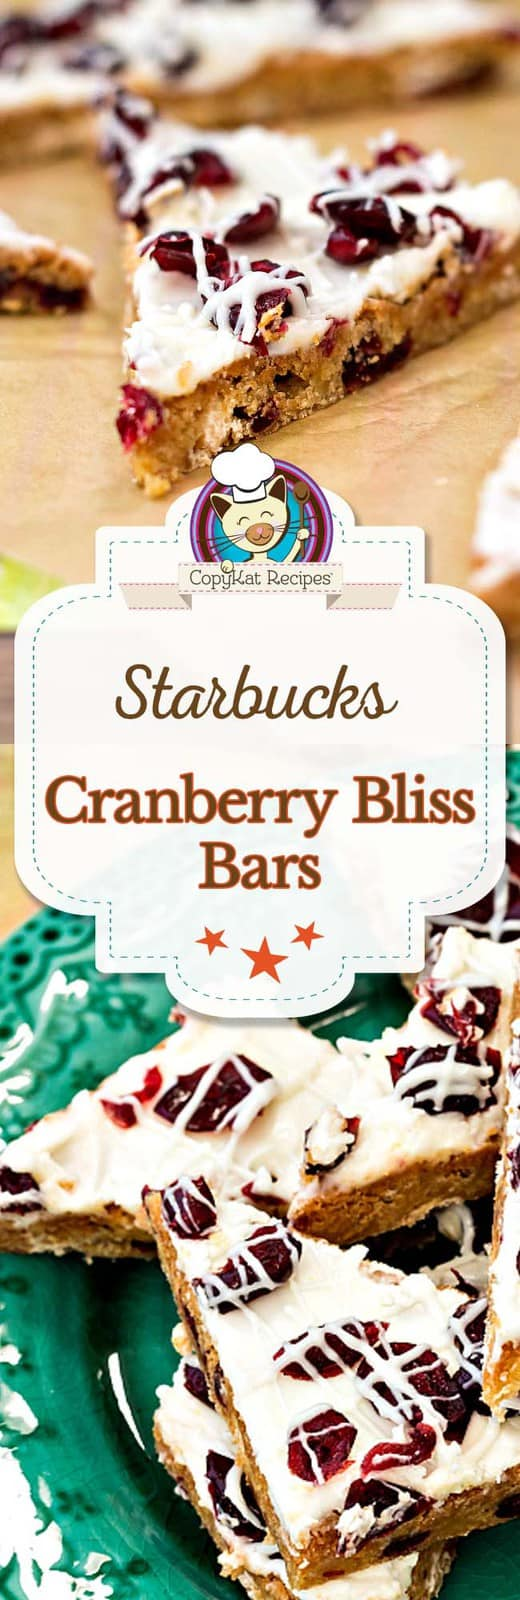 Make your own Starbucks Cranberry Bliss Bar at home with this easy copycat recipe.